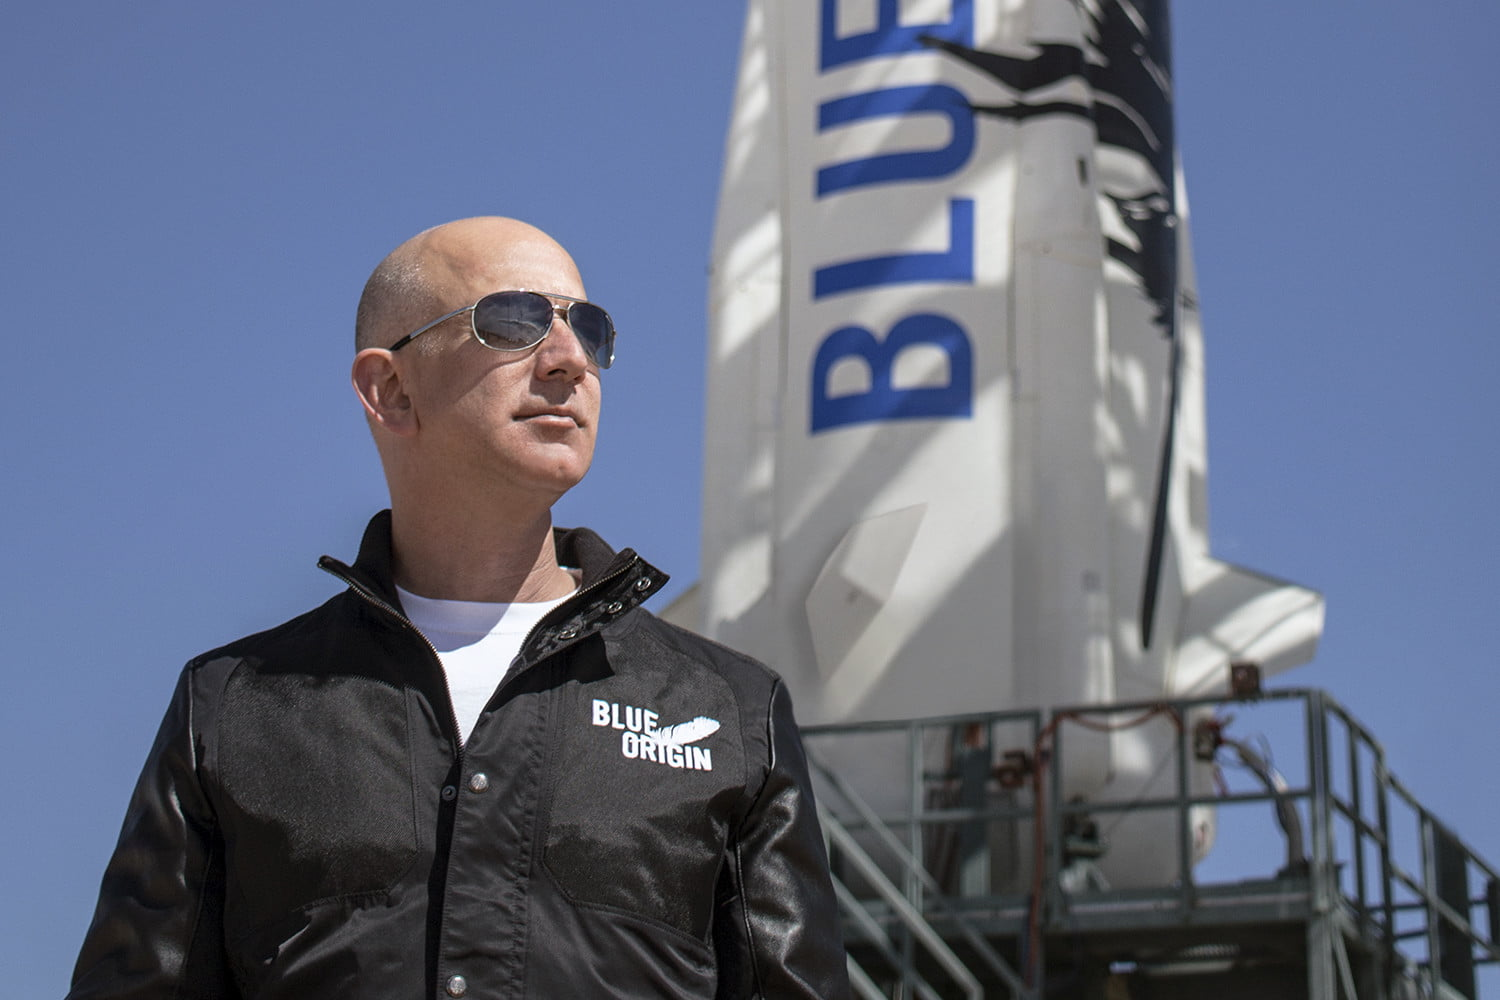 Blue Origin goes after Virgin Galactic over what counts as space